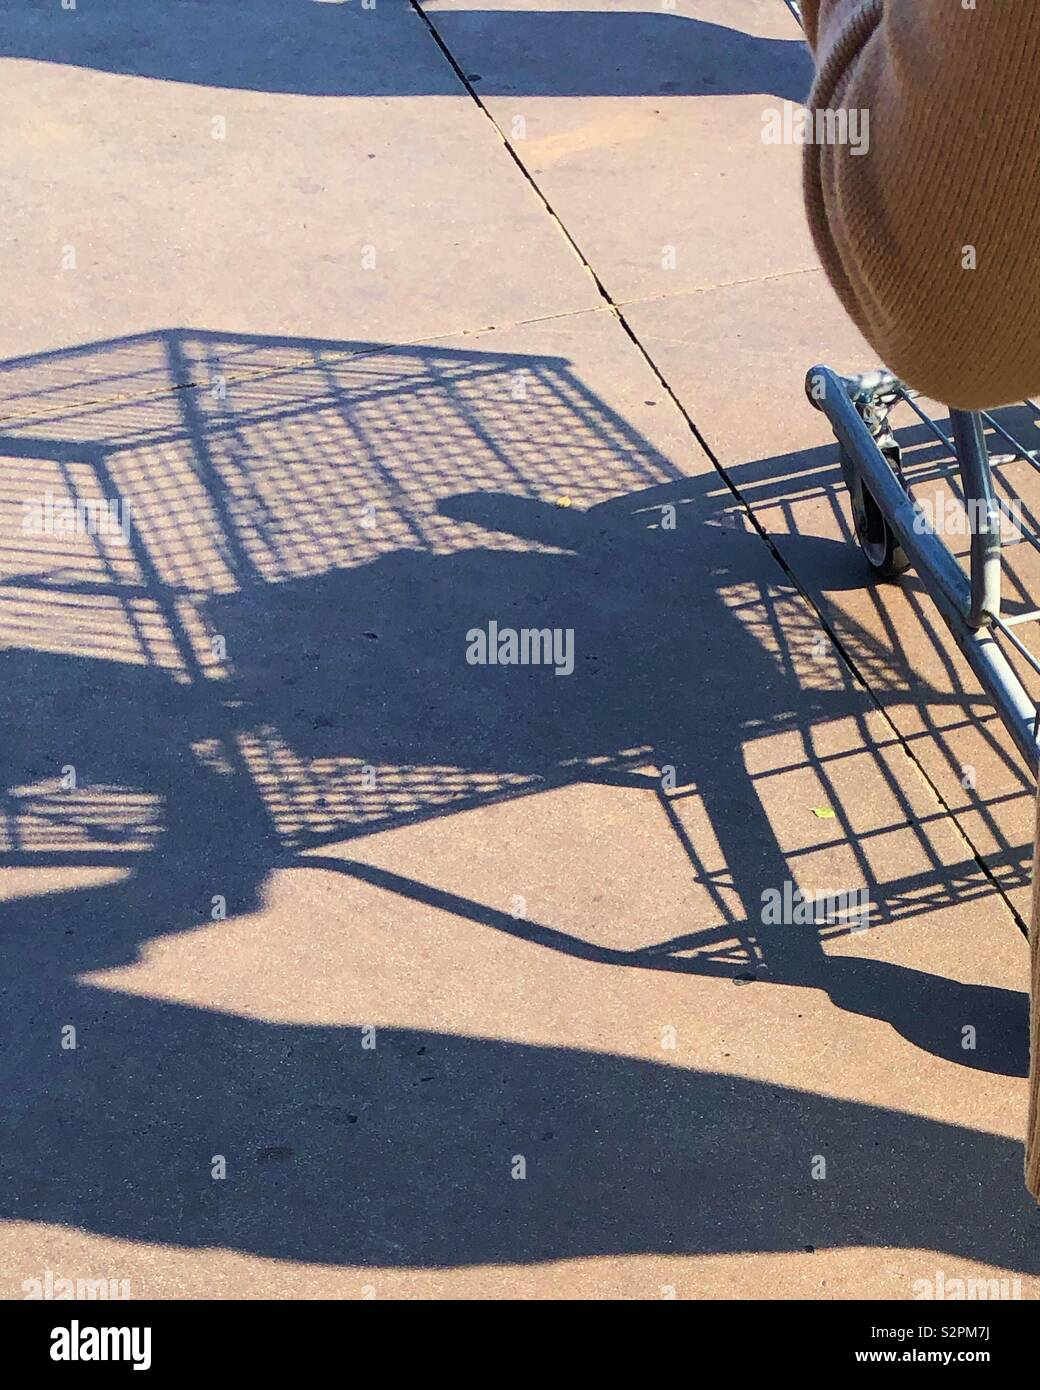 Shopping at the mall and pushing cart in the parking lot Stock Photo